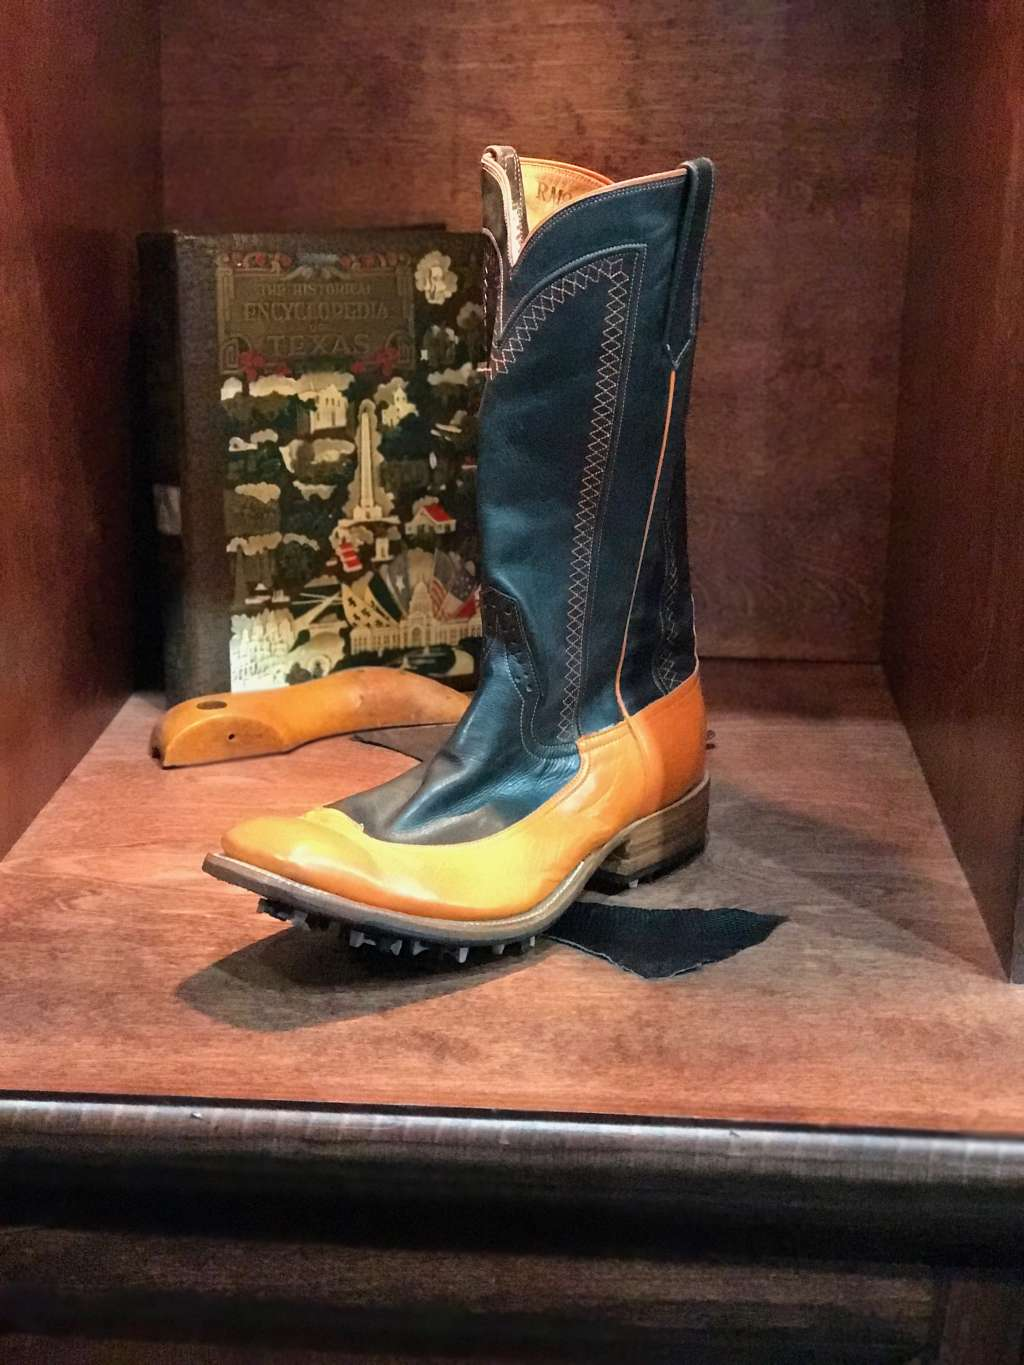 Custom Golf Cowboy Boots From Texas National Outfitters